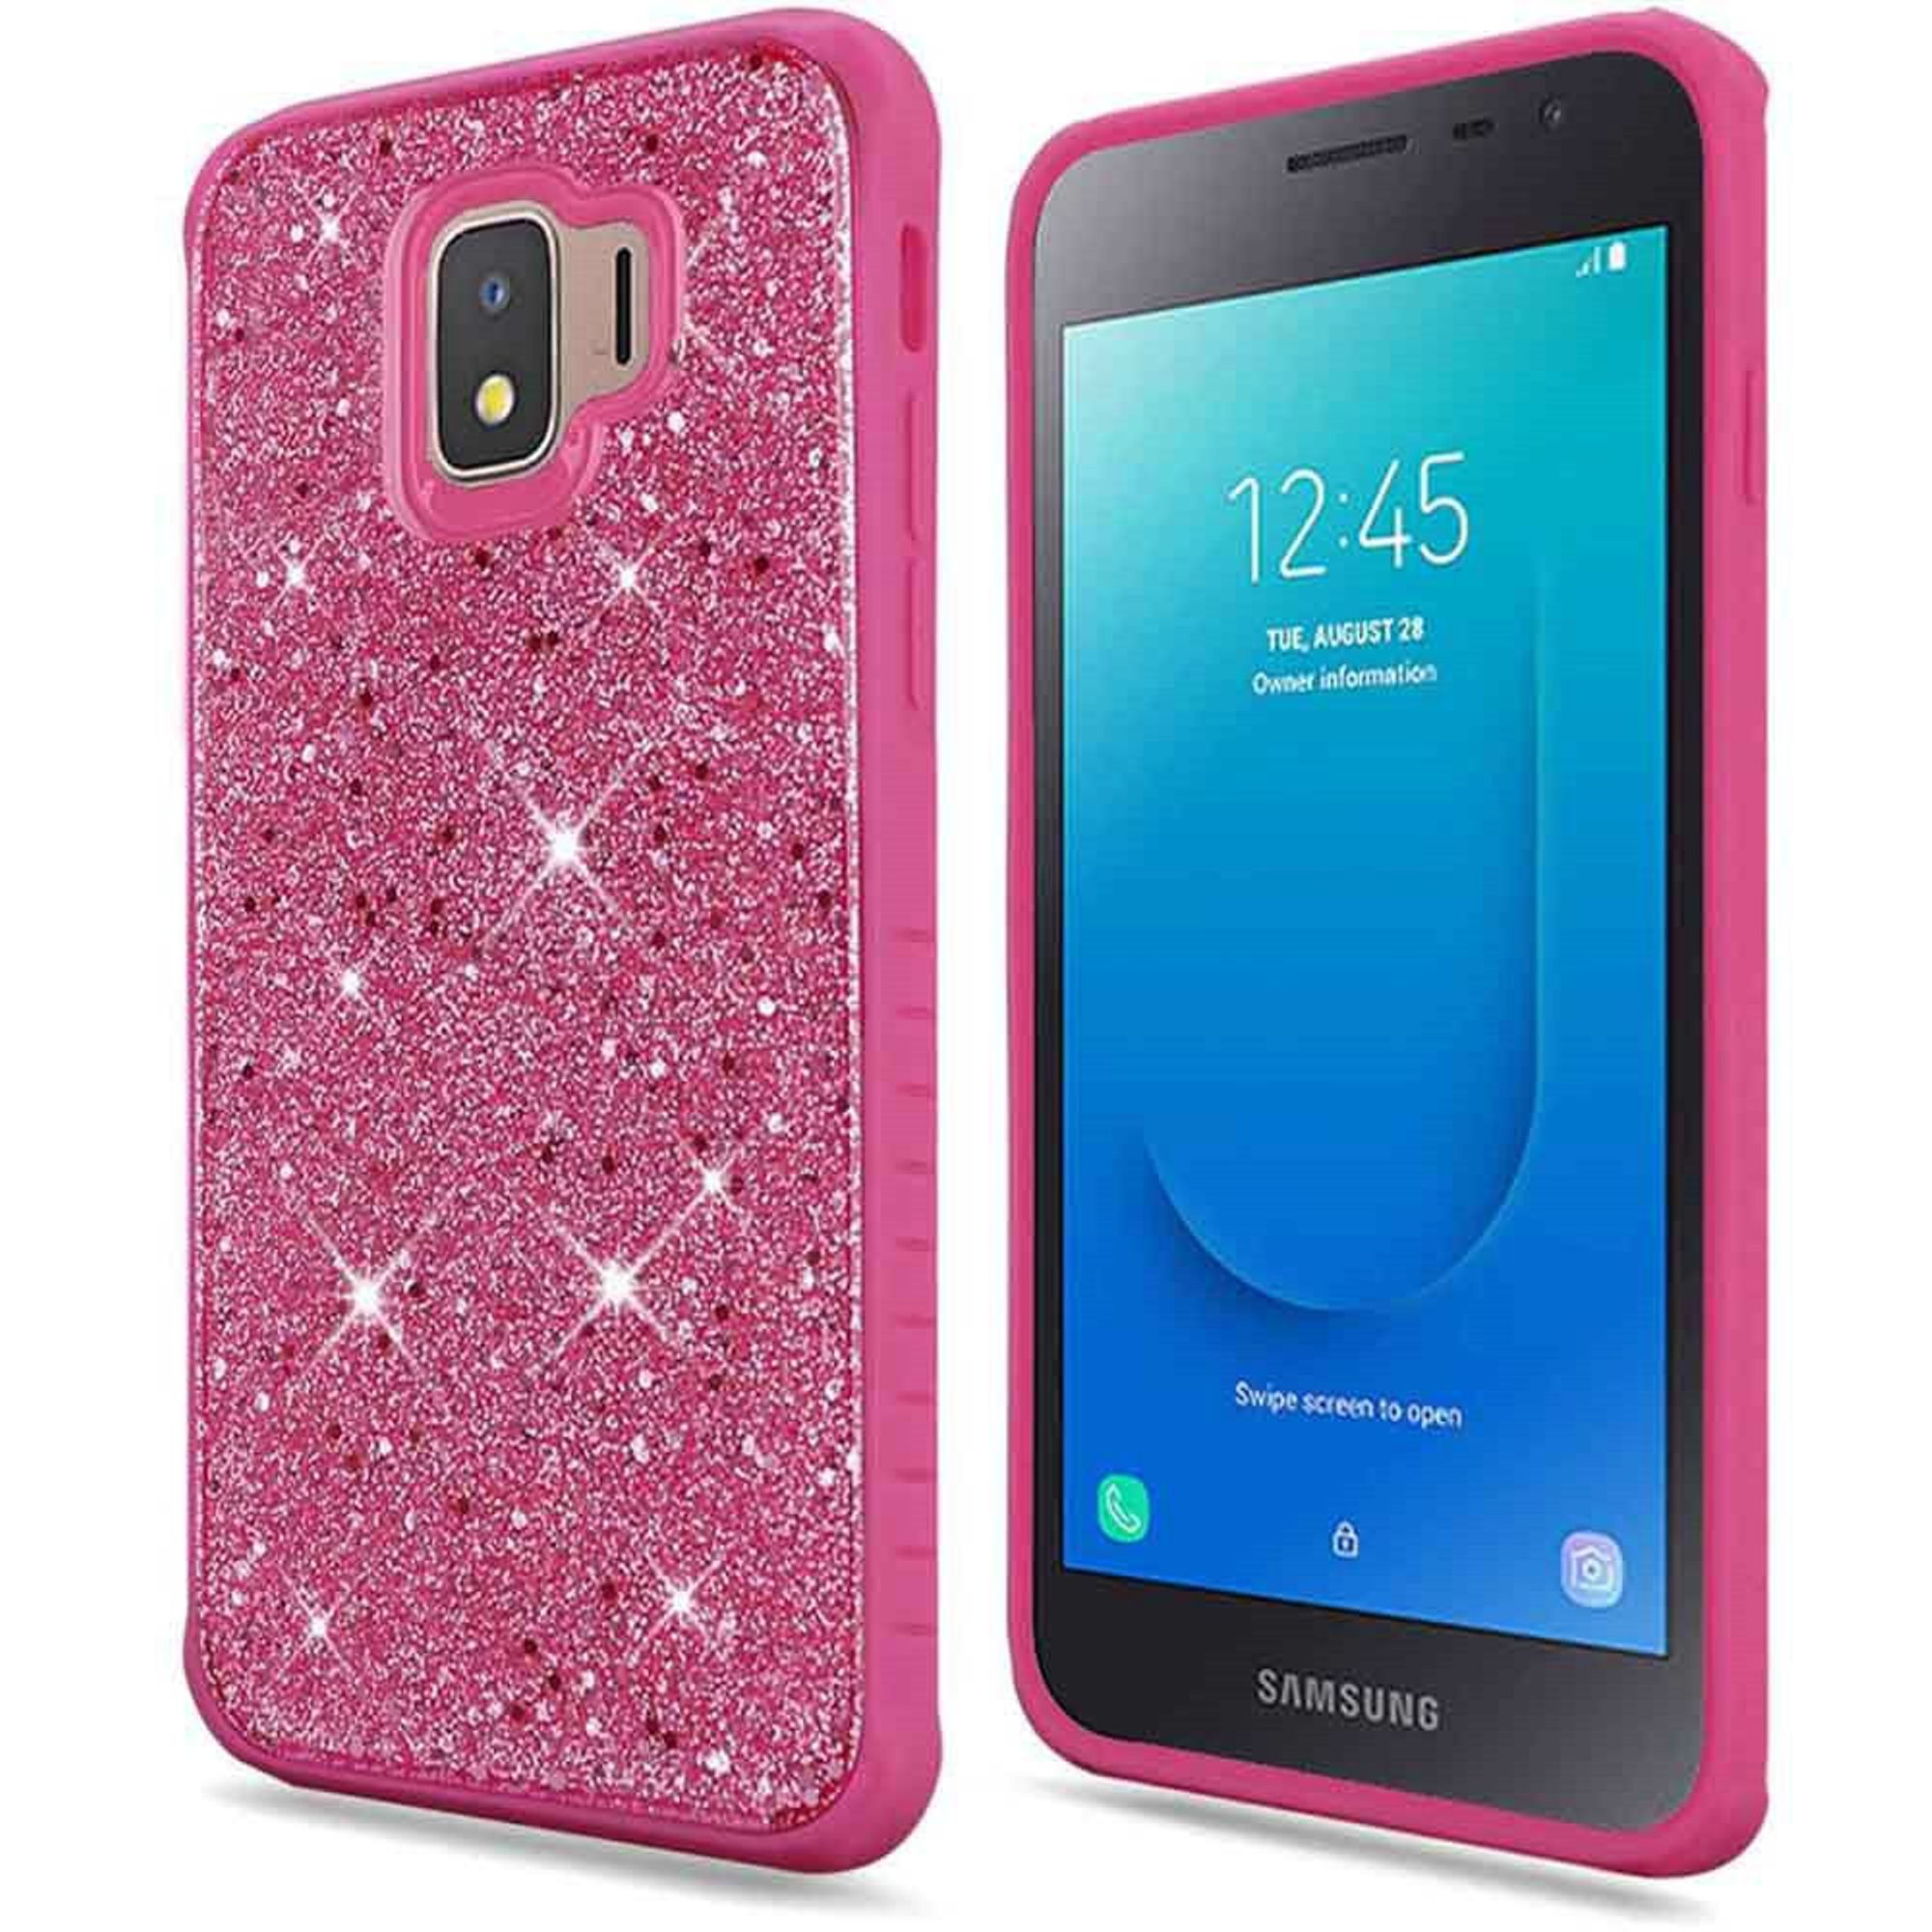 Samsung Galaxy J2 (2019) Case, by Insten Full Frozen Crude Glitter Dual Layer Hybrid PC/TPU Rubber Case Cover For Samsung Galaxy J2 (2019) - Hot Pink